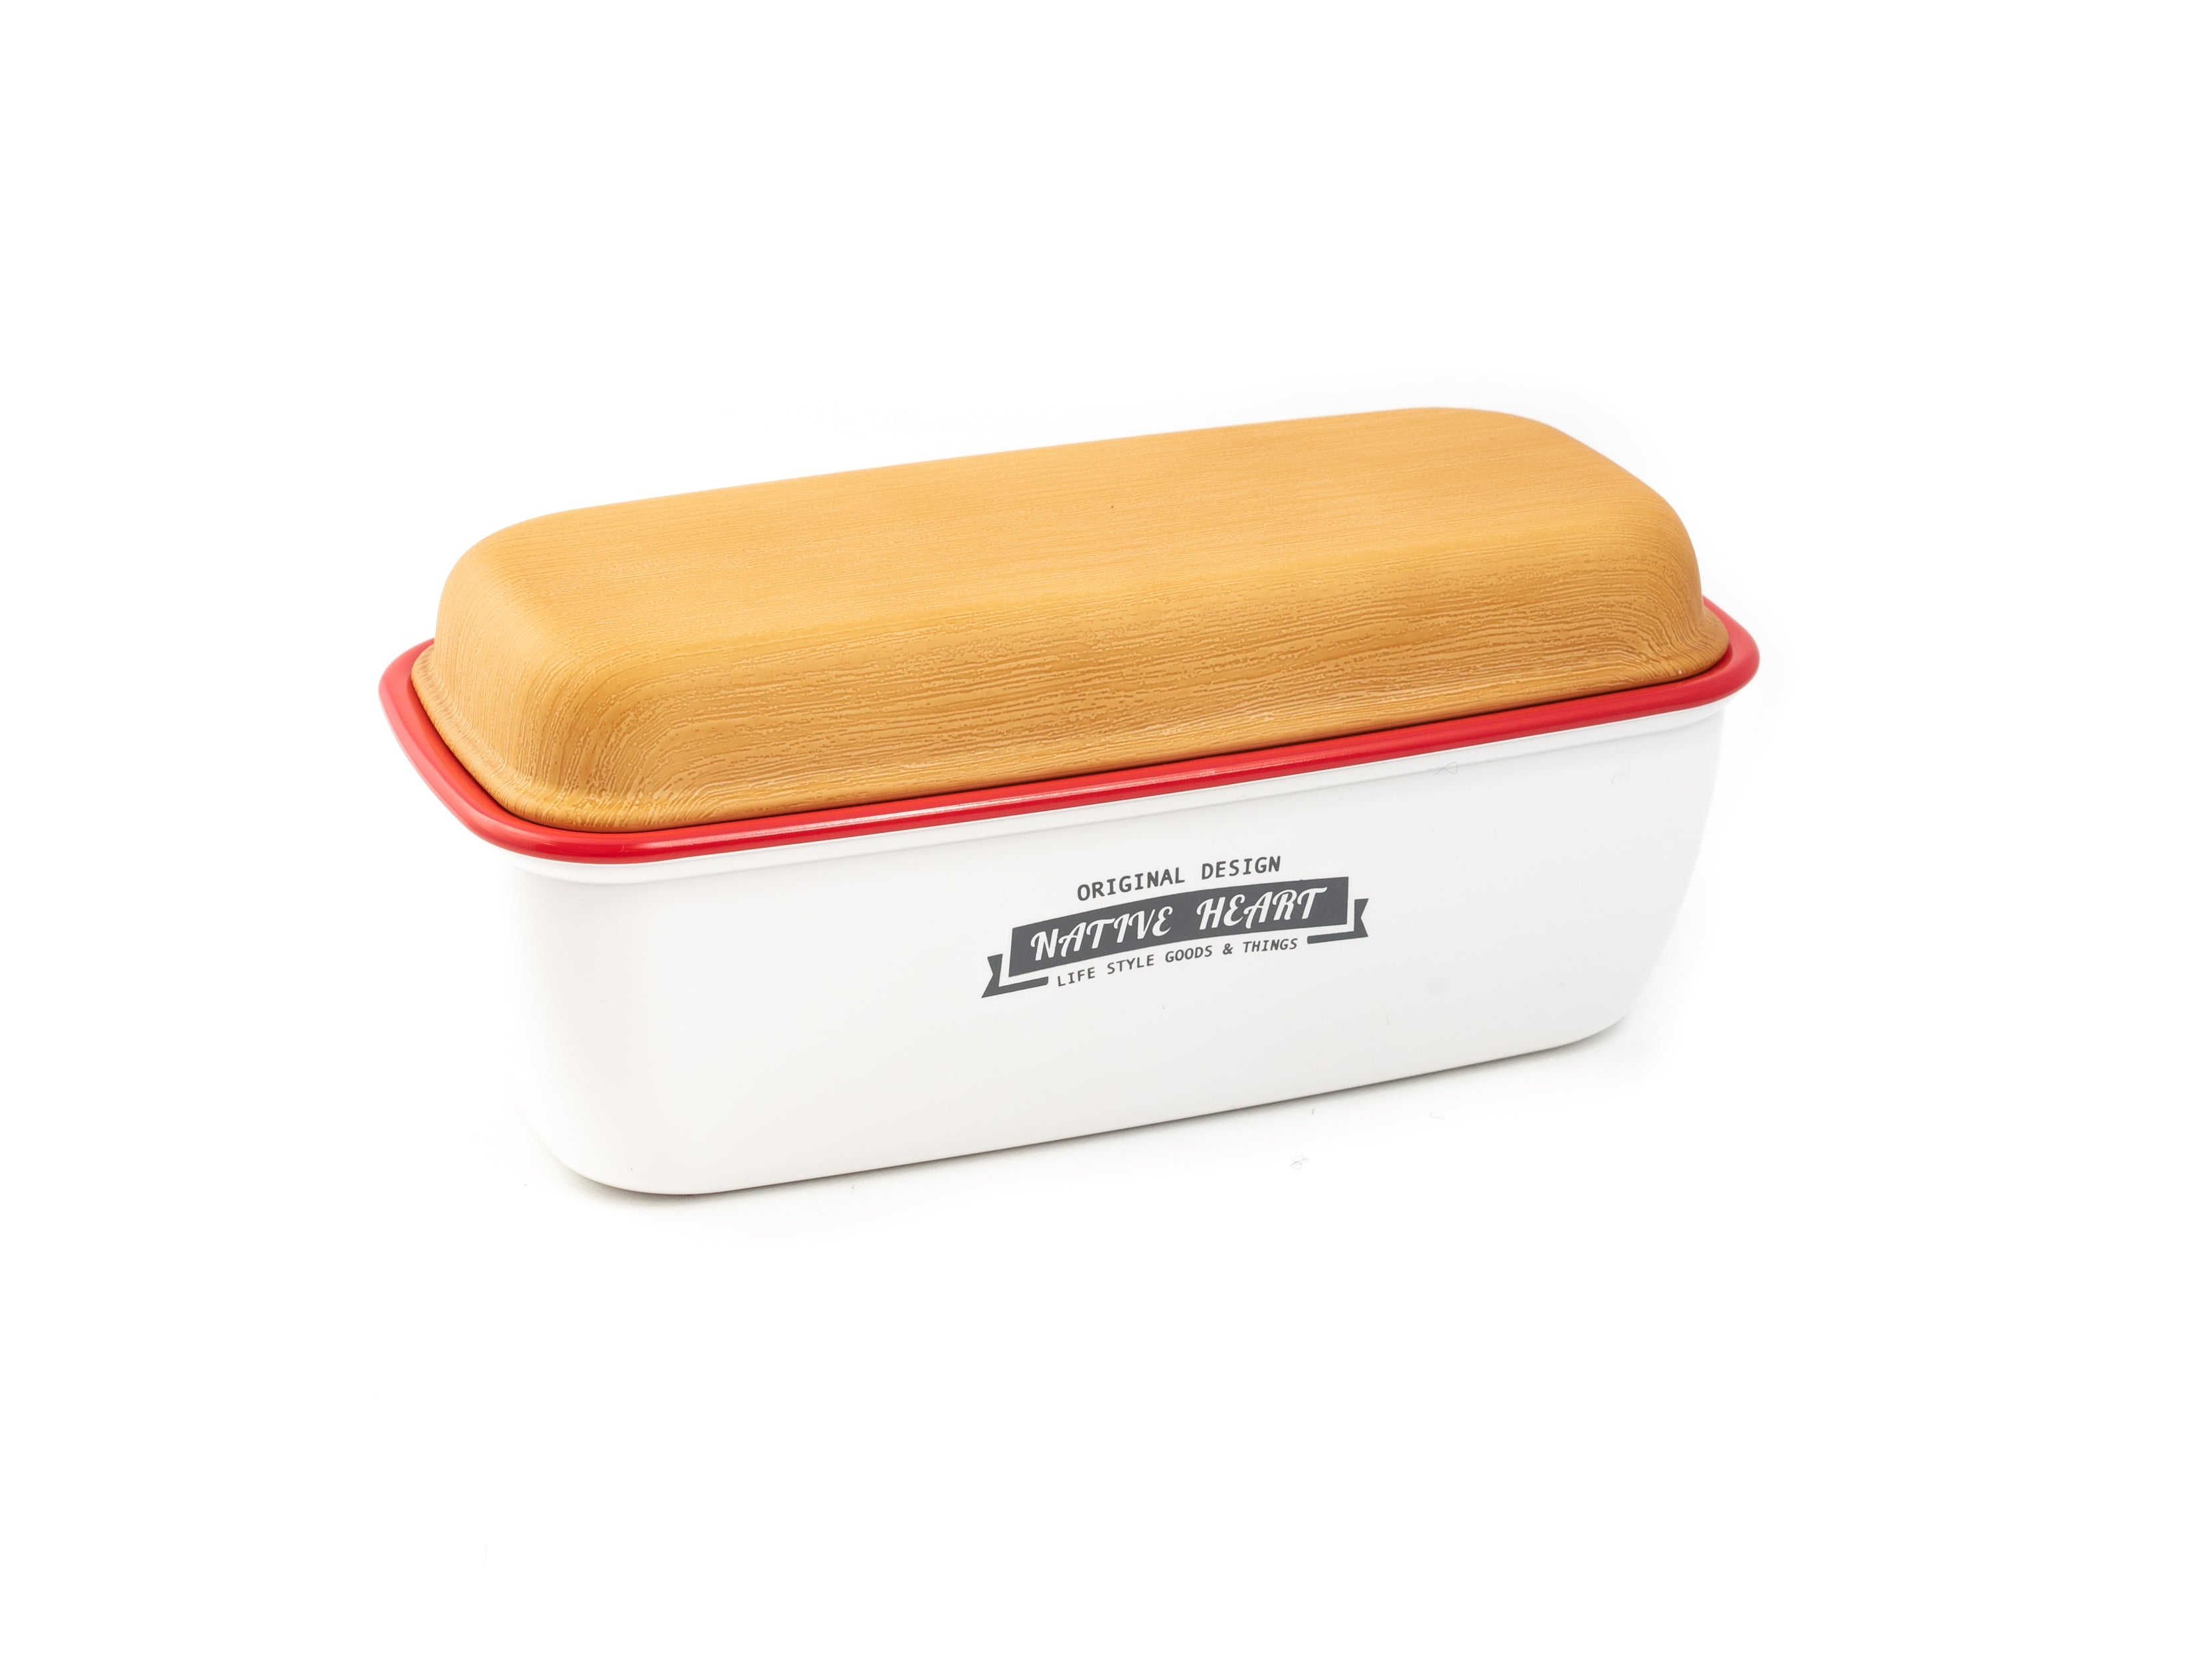 Native Heart Original Lunch Box | White by Showa - Bento&co Japanese Bento Lunch Boxes and Kitchenware Specialists